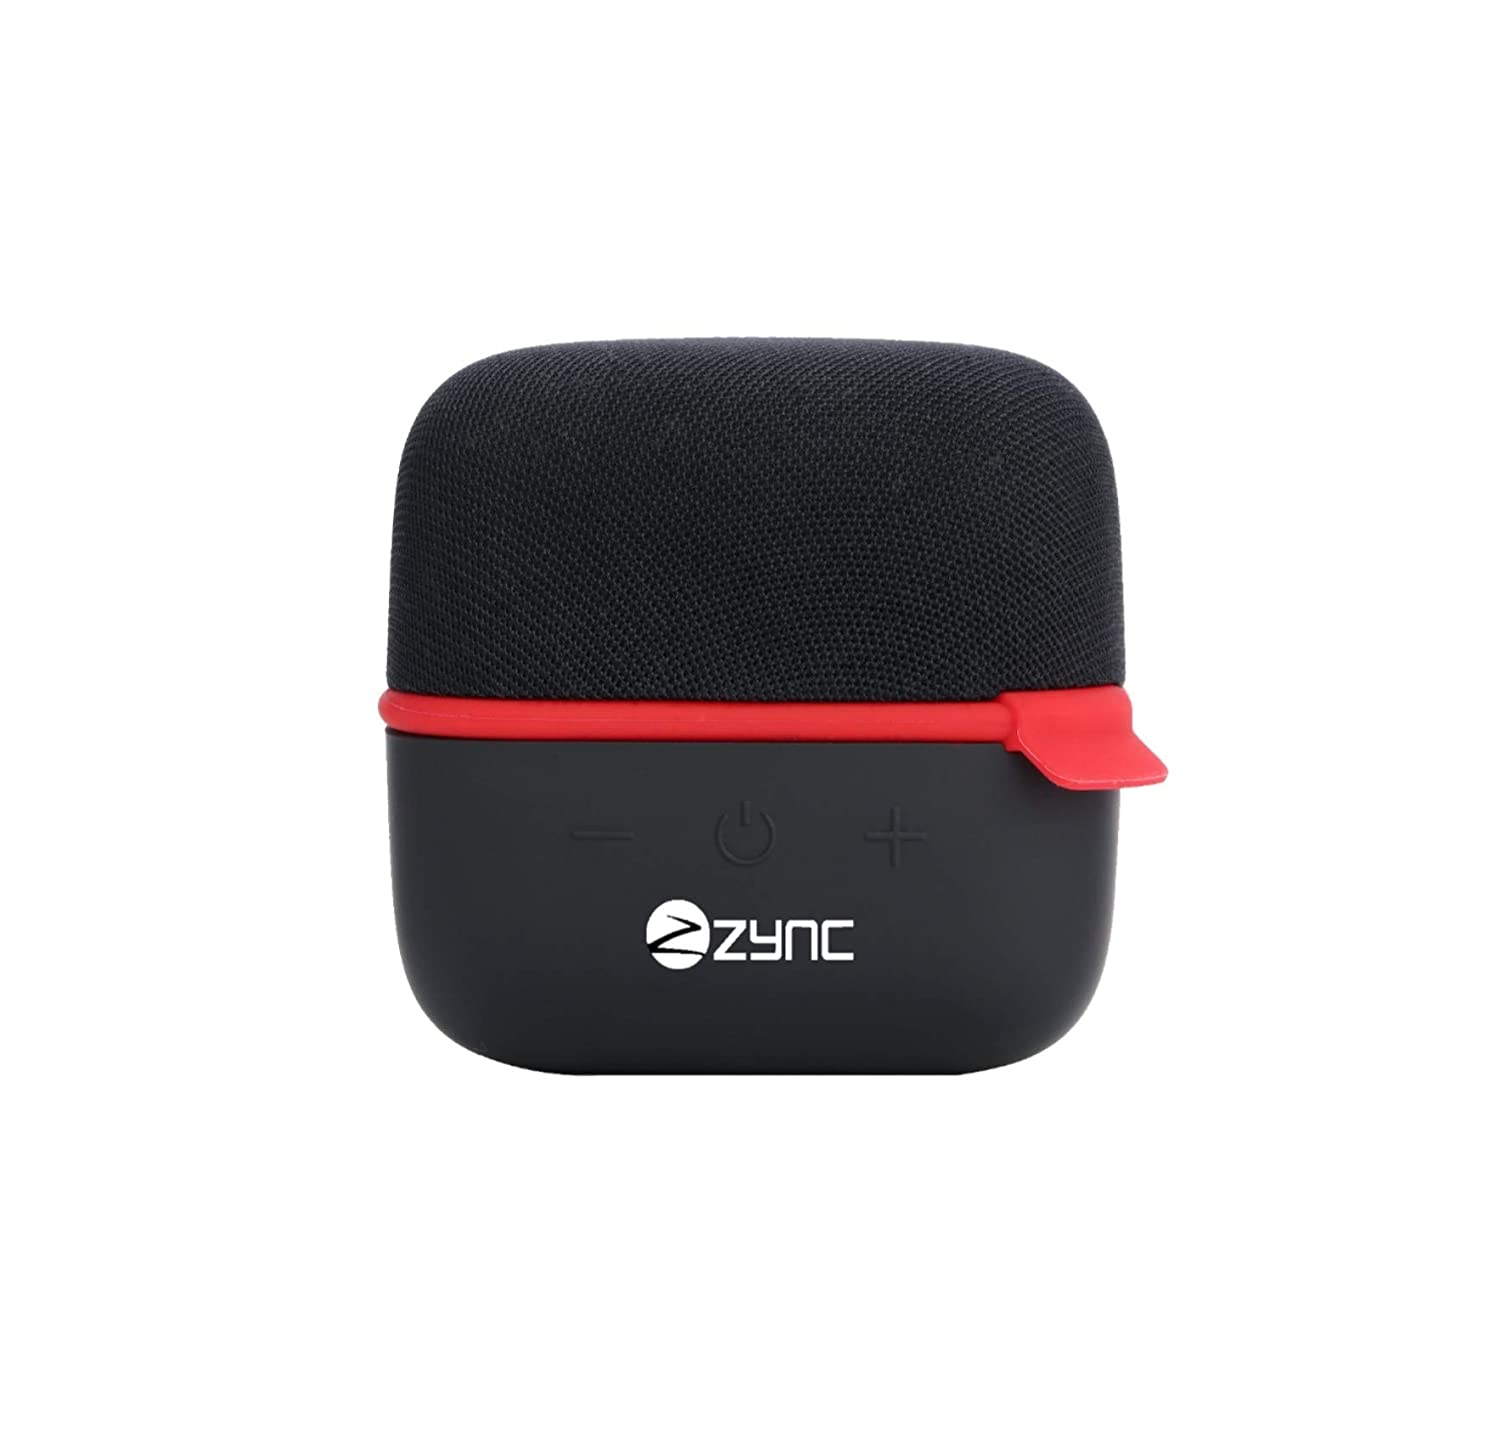 Zync Wireless Cube Portable Bluetooth Speaker